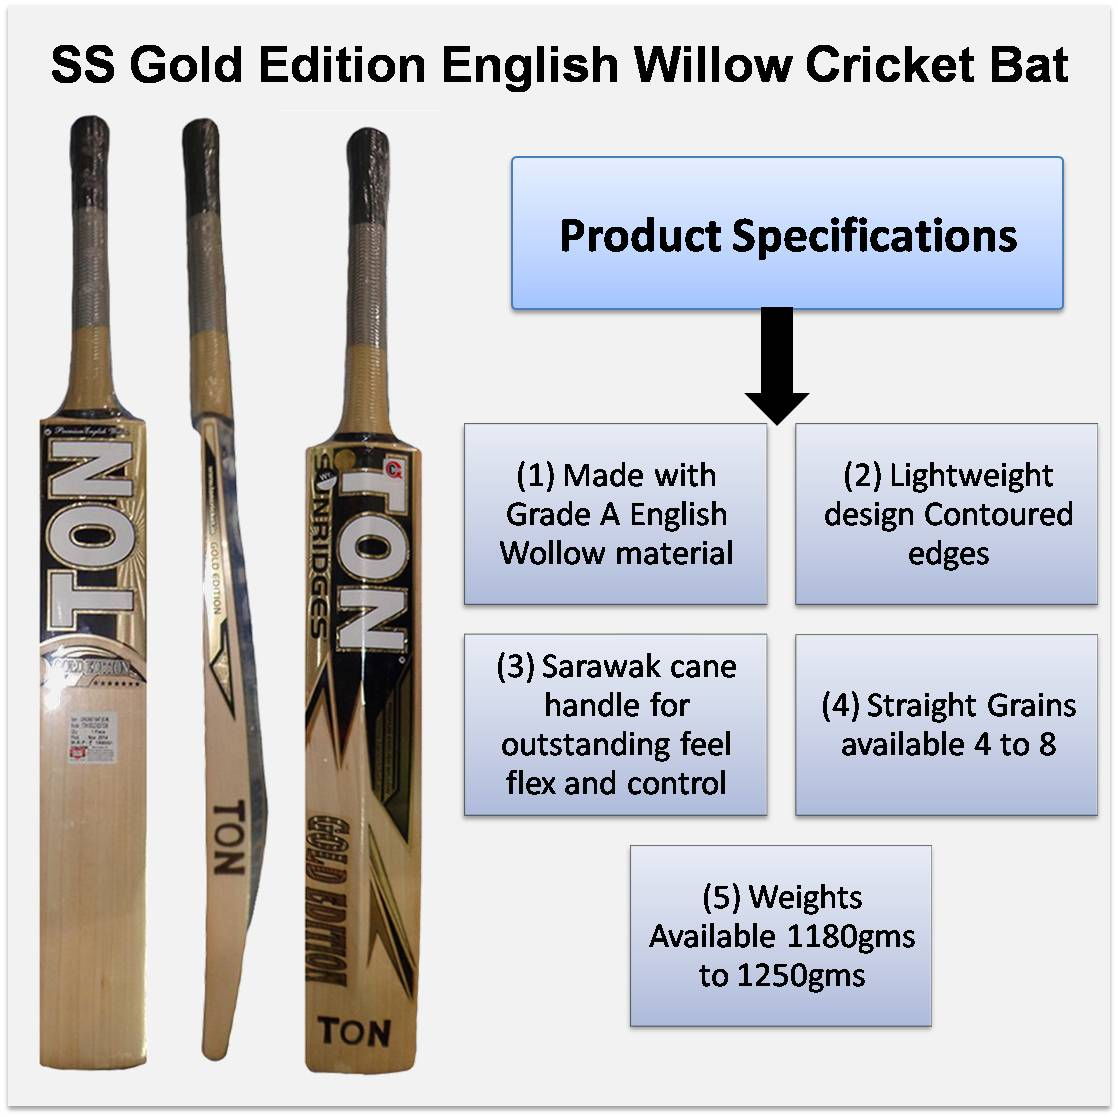 SS Gold Edition English Willow Cricket Bat